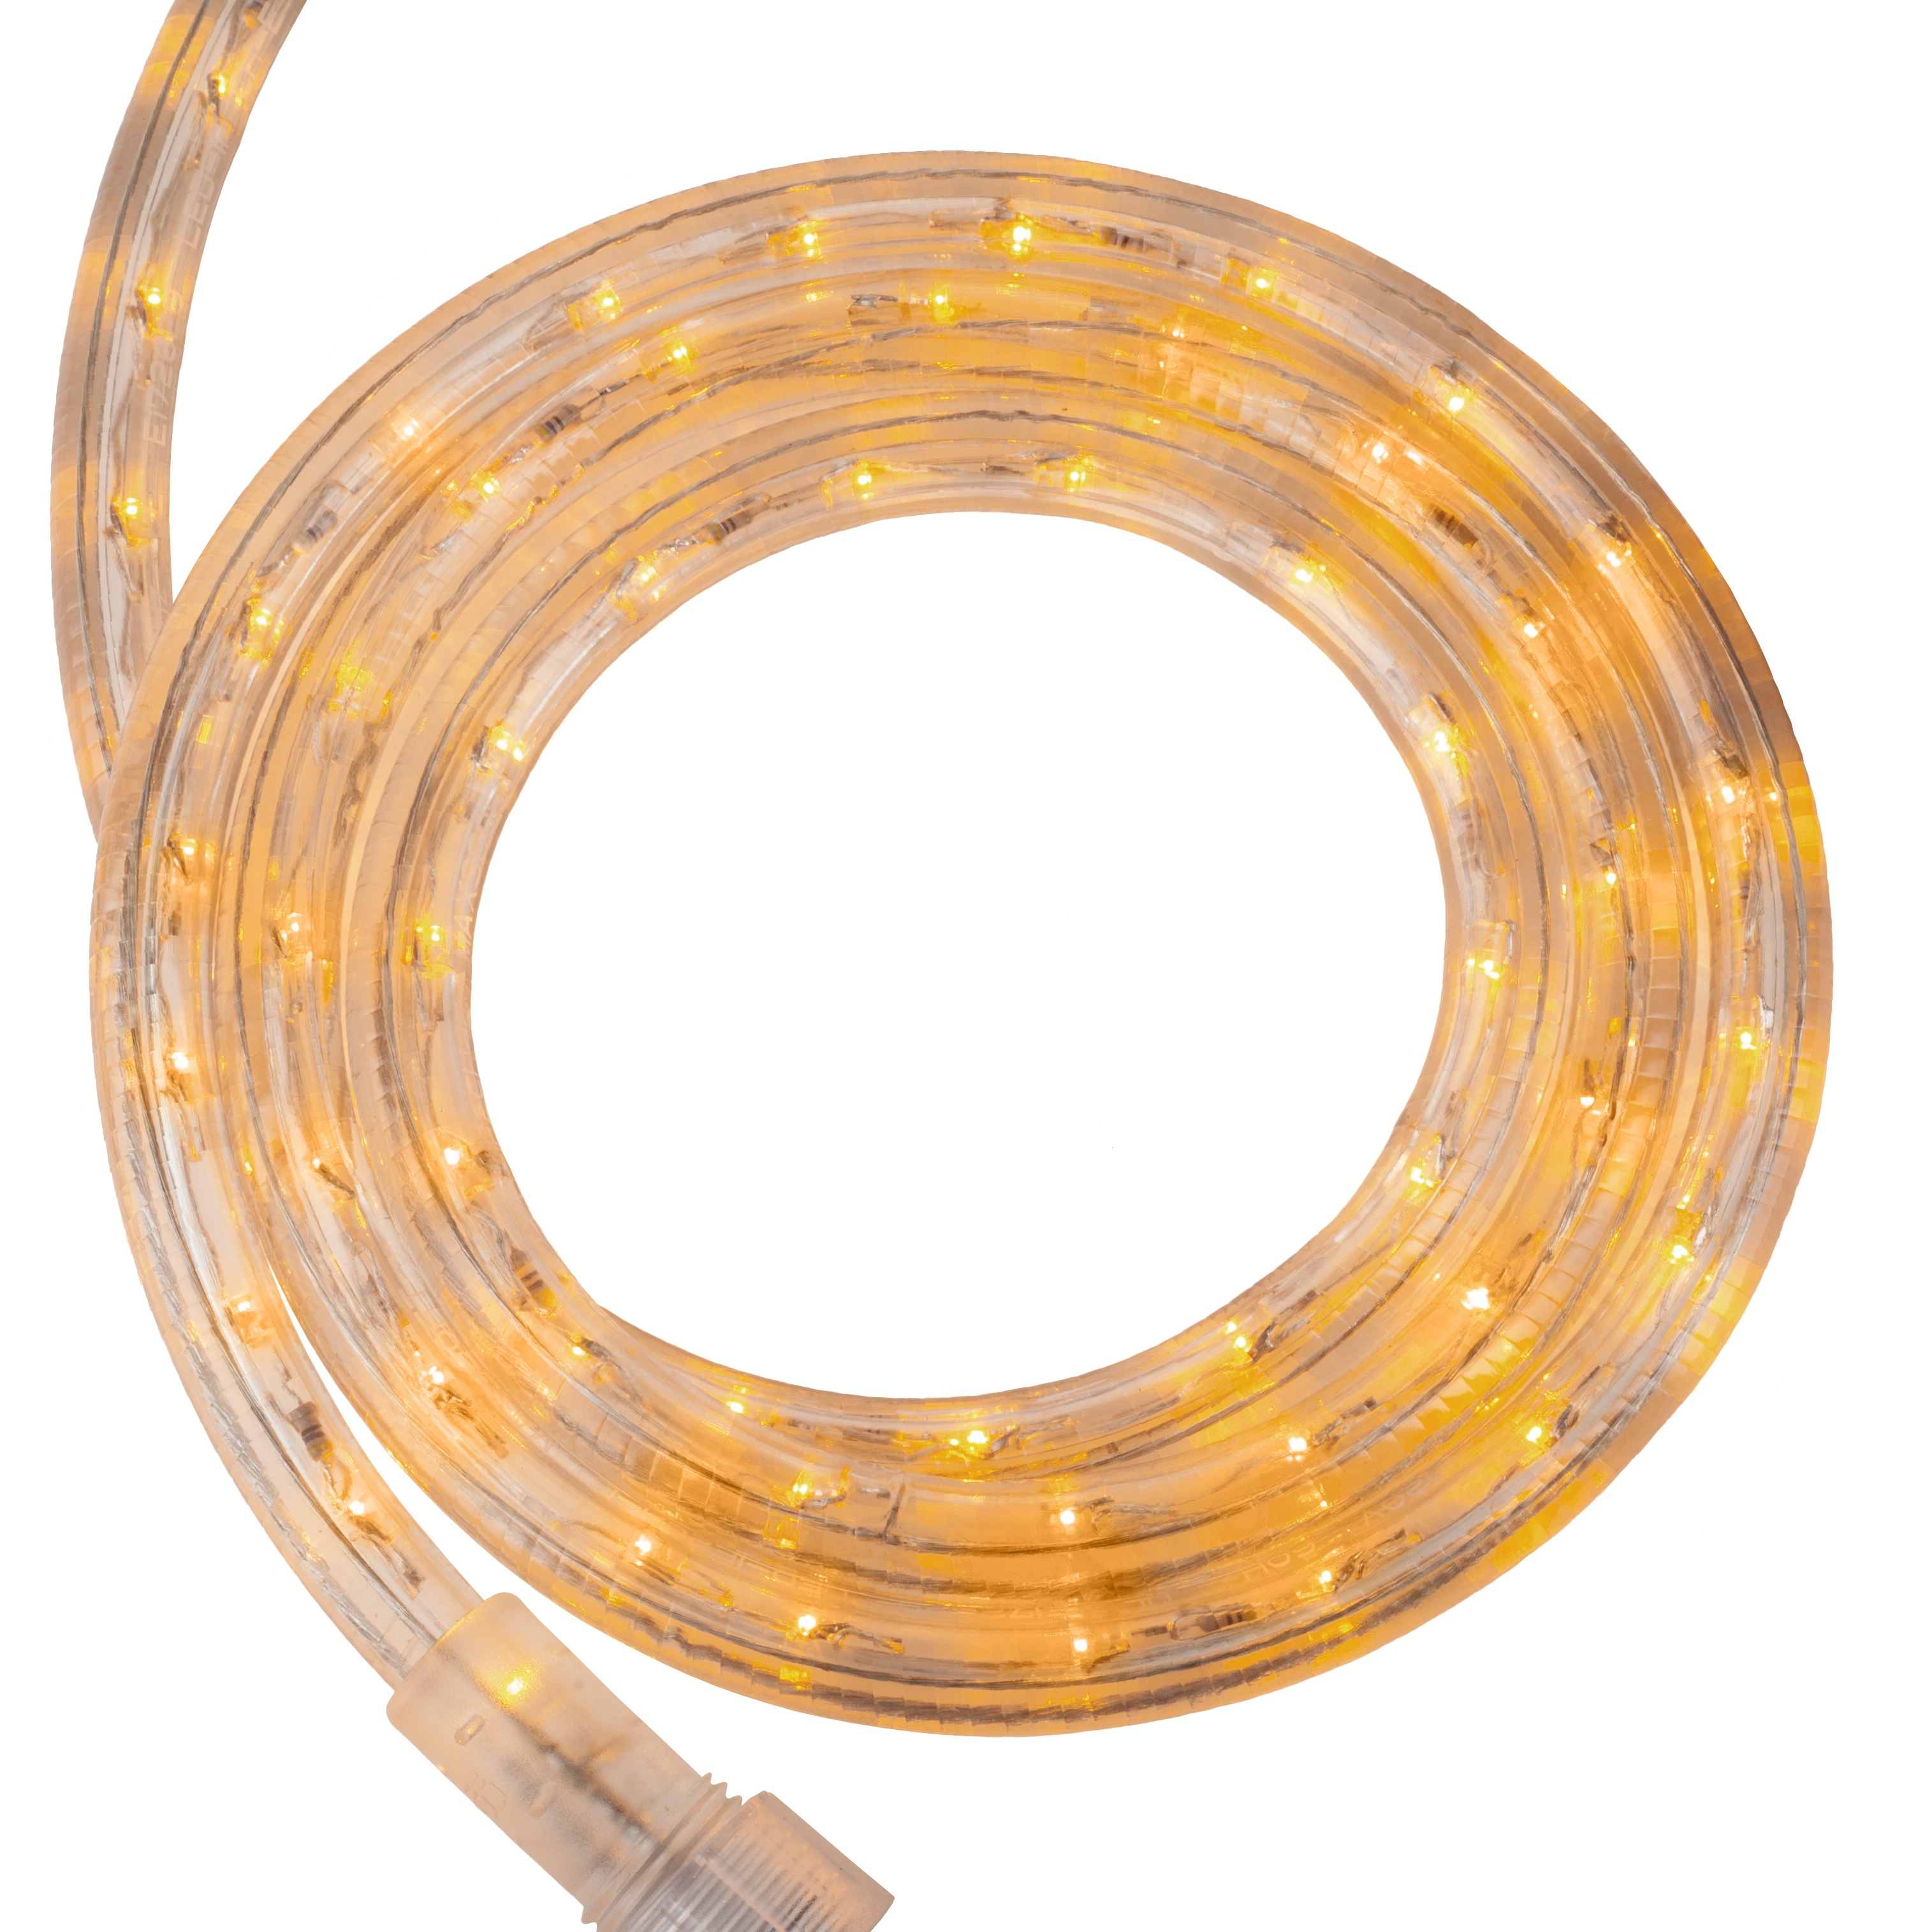 Yellow LED Rope Light Kit